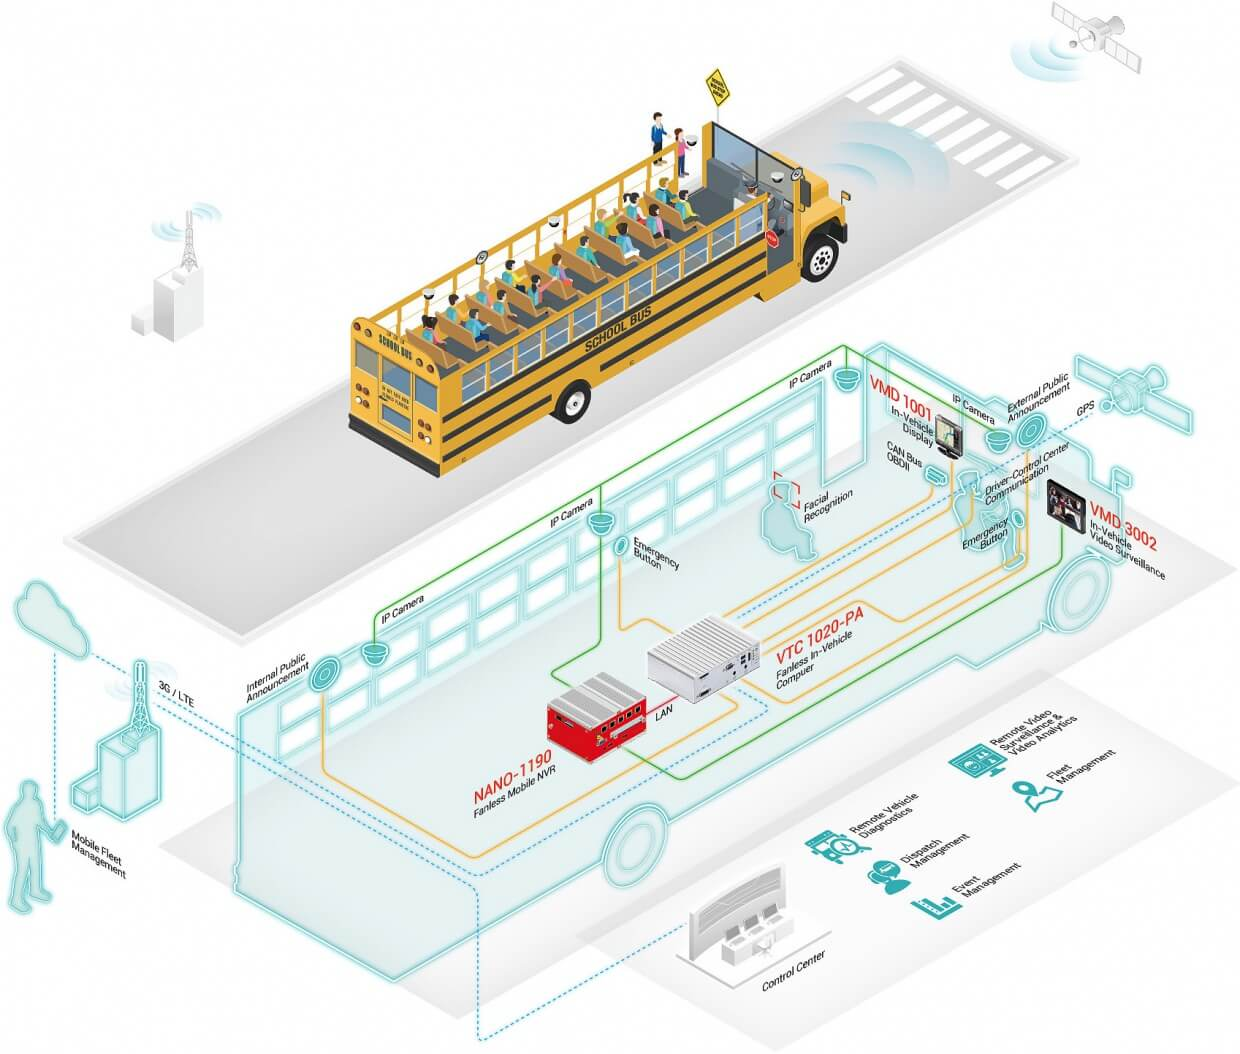 Bus Surveillance Solutions Diagram